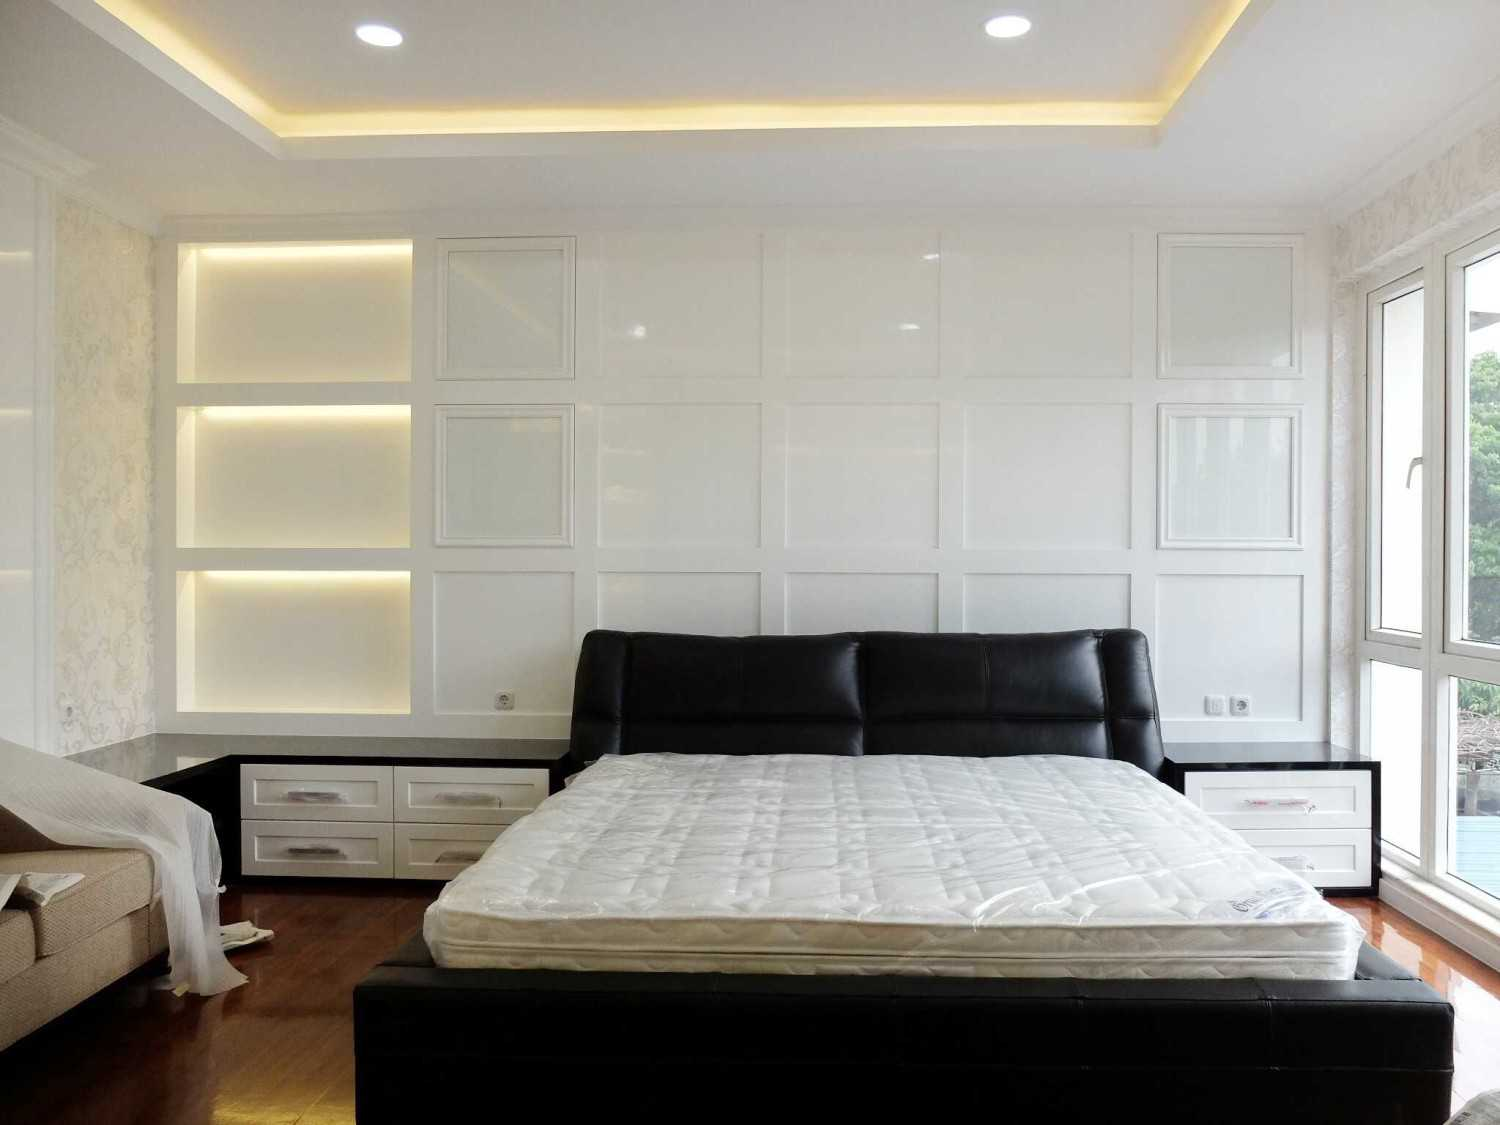 7Design Architect Mr. H House At Spring Hill Spring Hill Golf Residence, Kemayoran Spring Hill Golf Residence, Kemayoran Bedroom Modern 18277